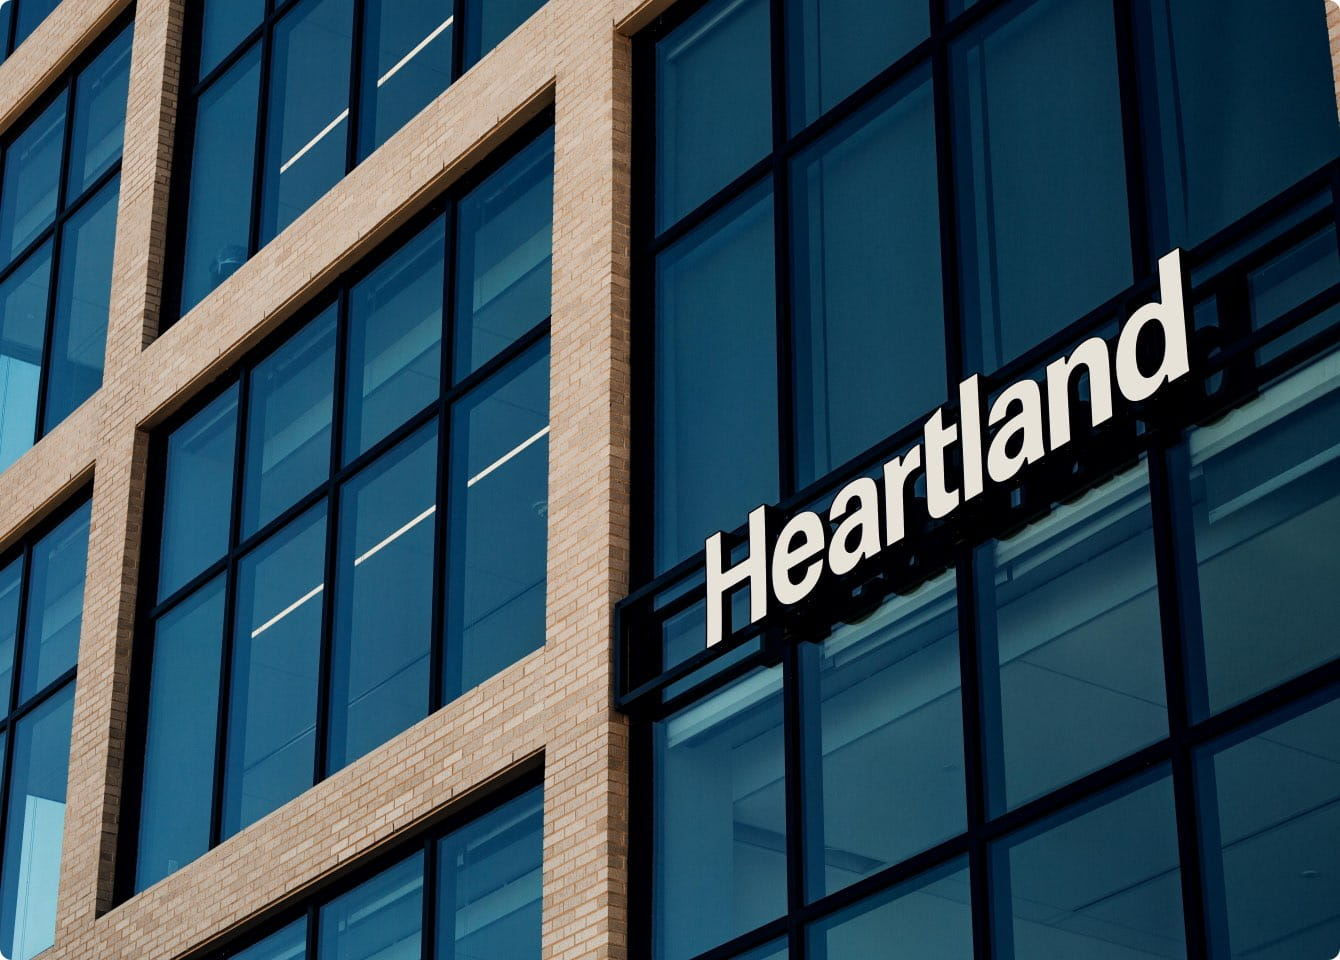 Heartland building with a company sign